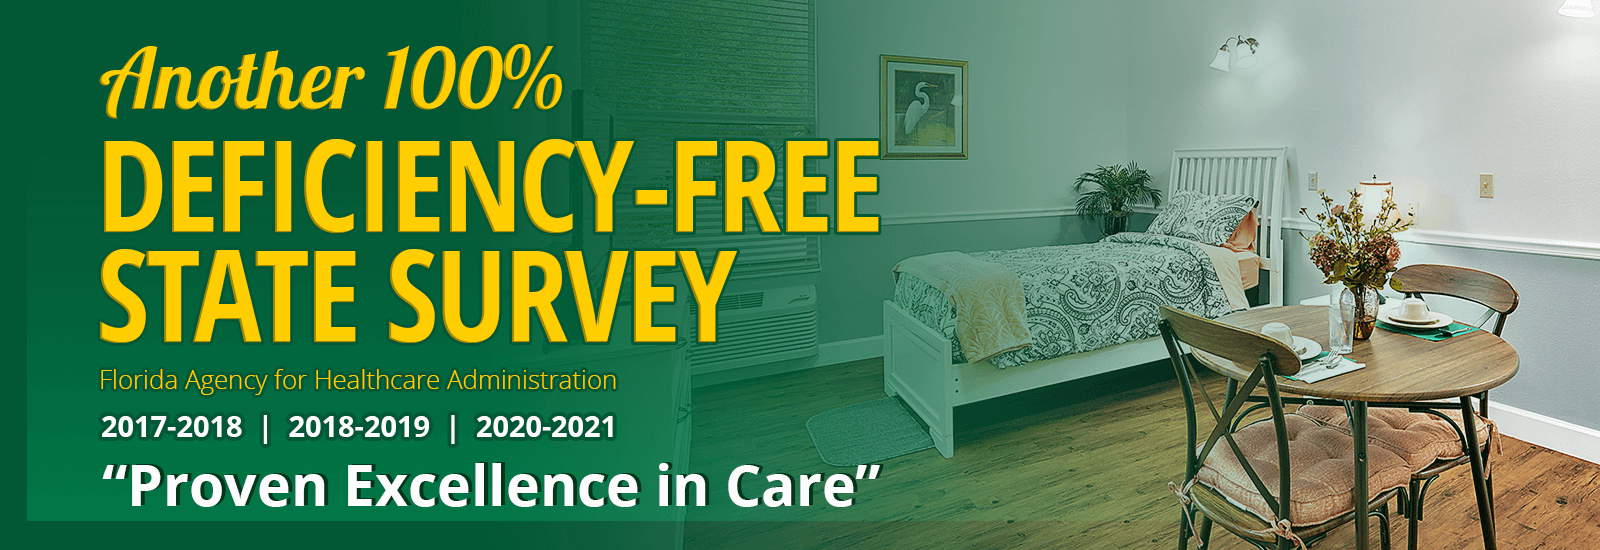 """Another 100% Deficiency-Free State Survey completed by the Florida Agency for Healthcare Administration 2017 - 2021 """"Proven Excellence in Care"""""""